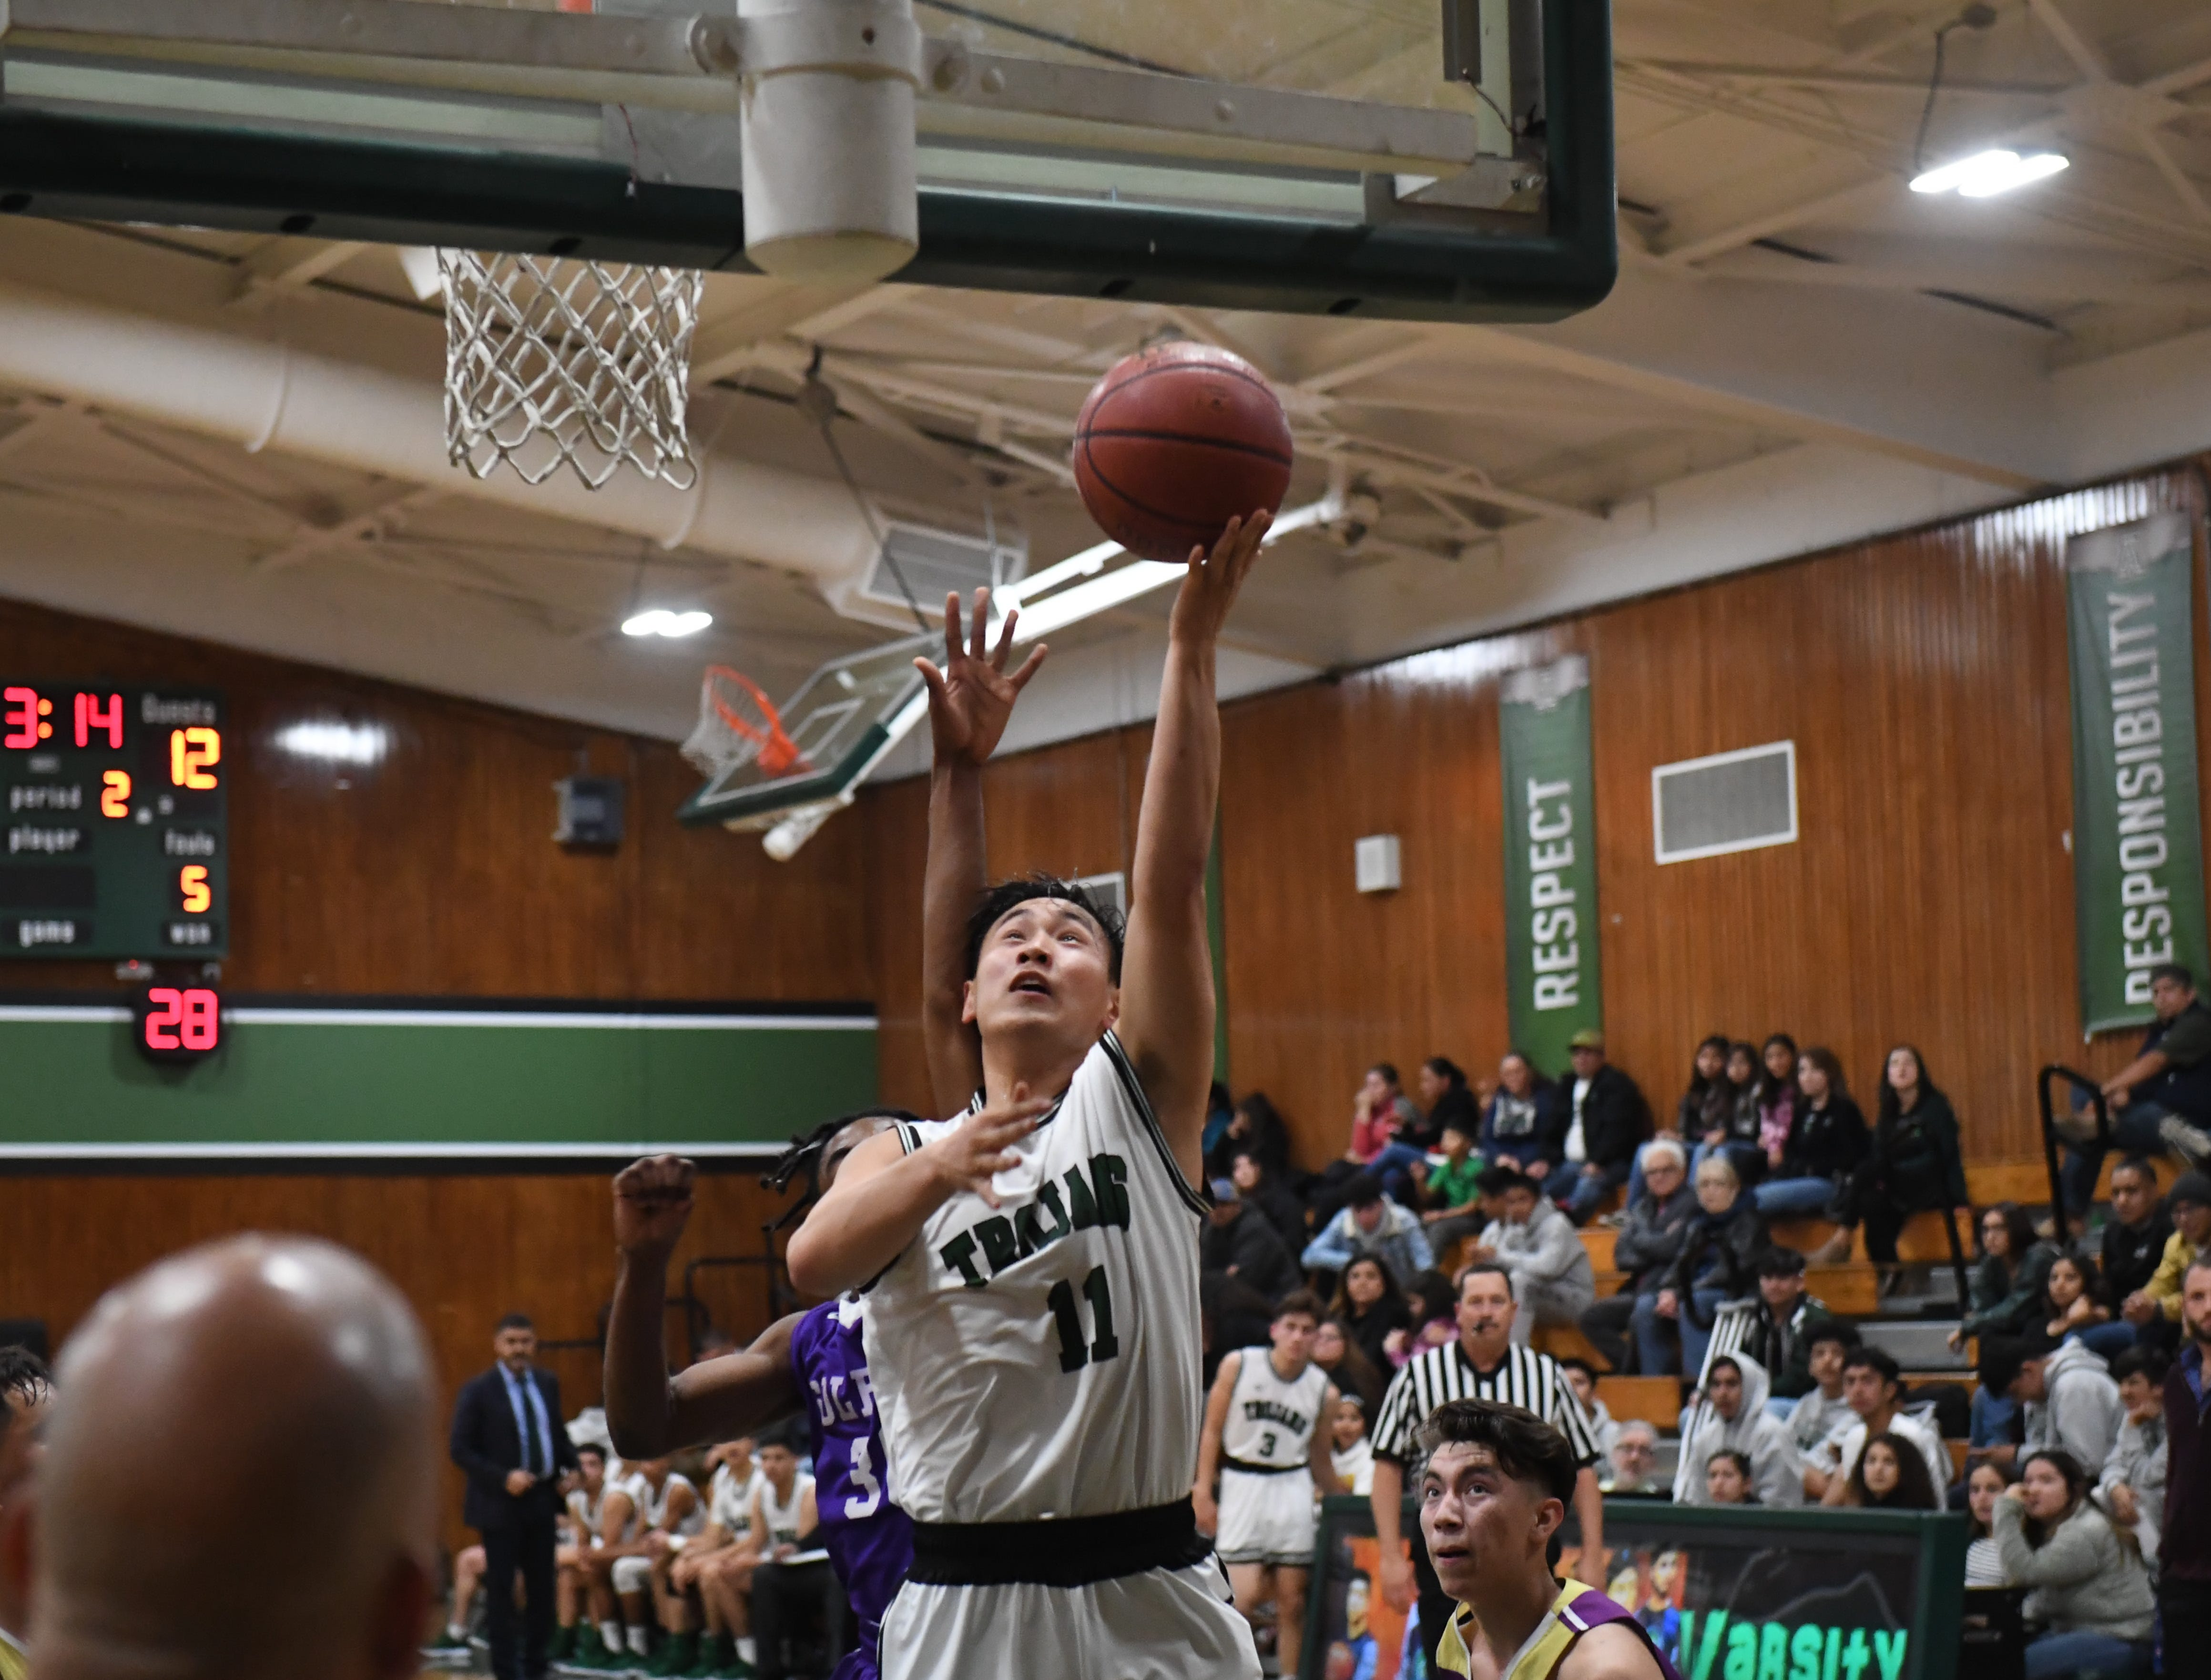 Alisal guard Joshua Vuoung (11) puts up a layup despite the contact from a Soledad defender.